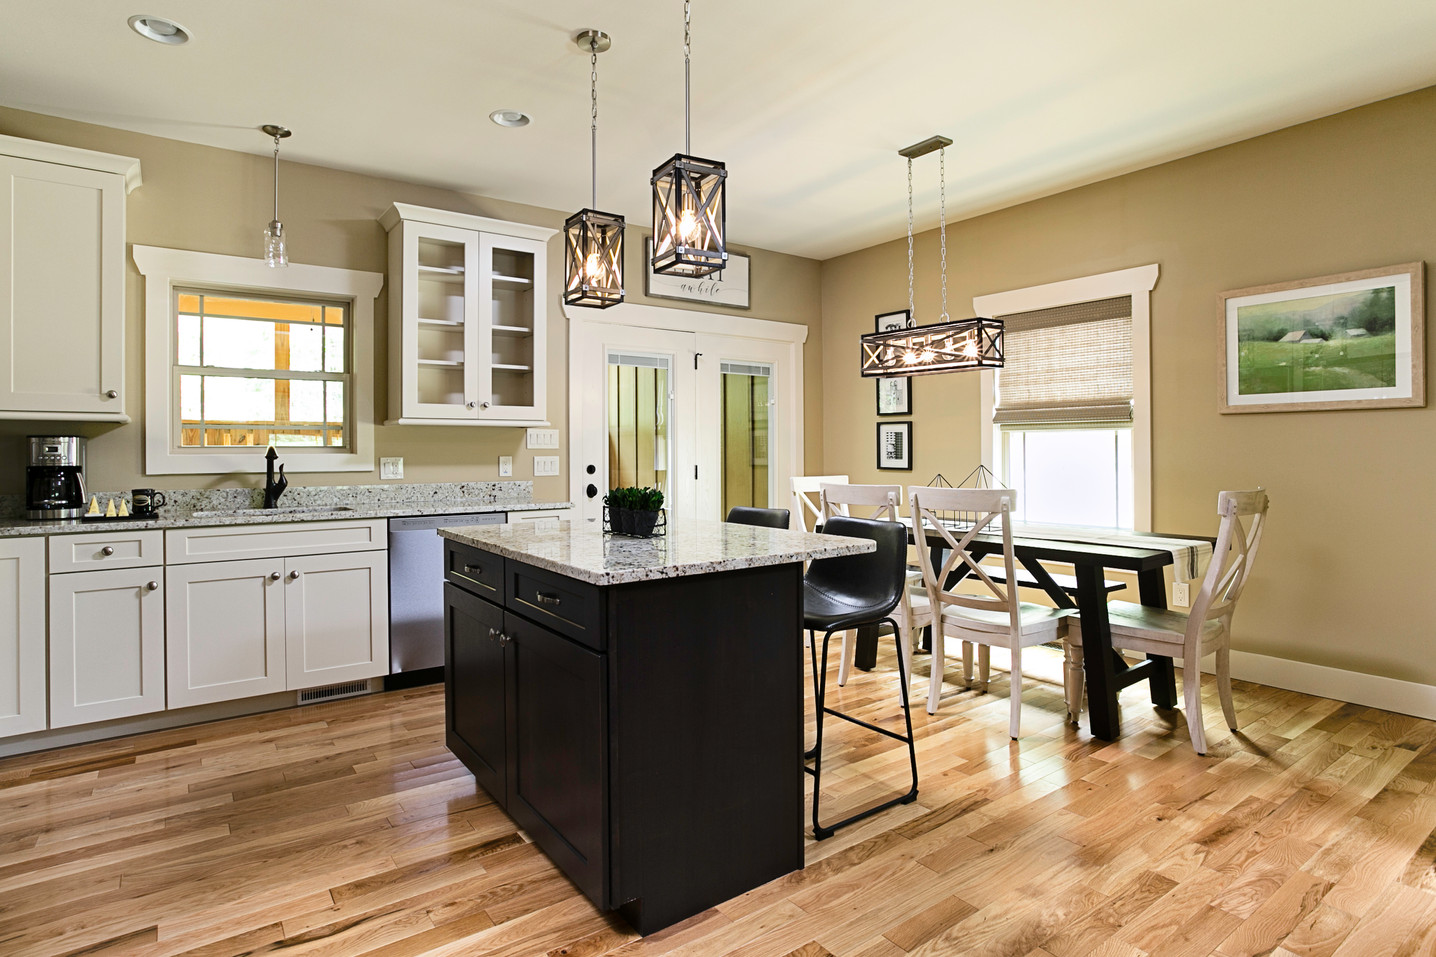 Large kitchen island in this vacation rental with granite counter tops